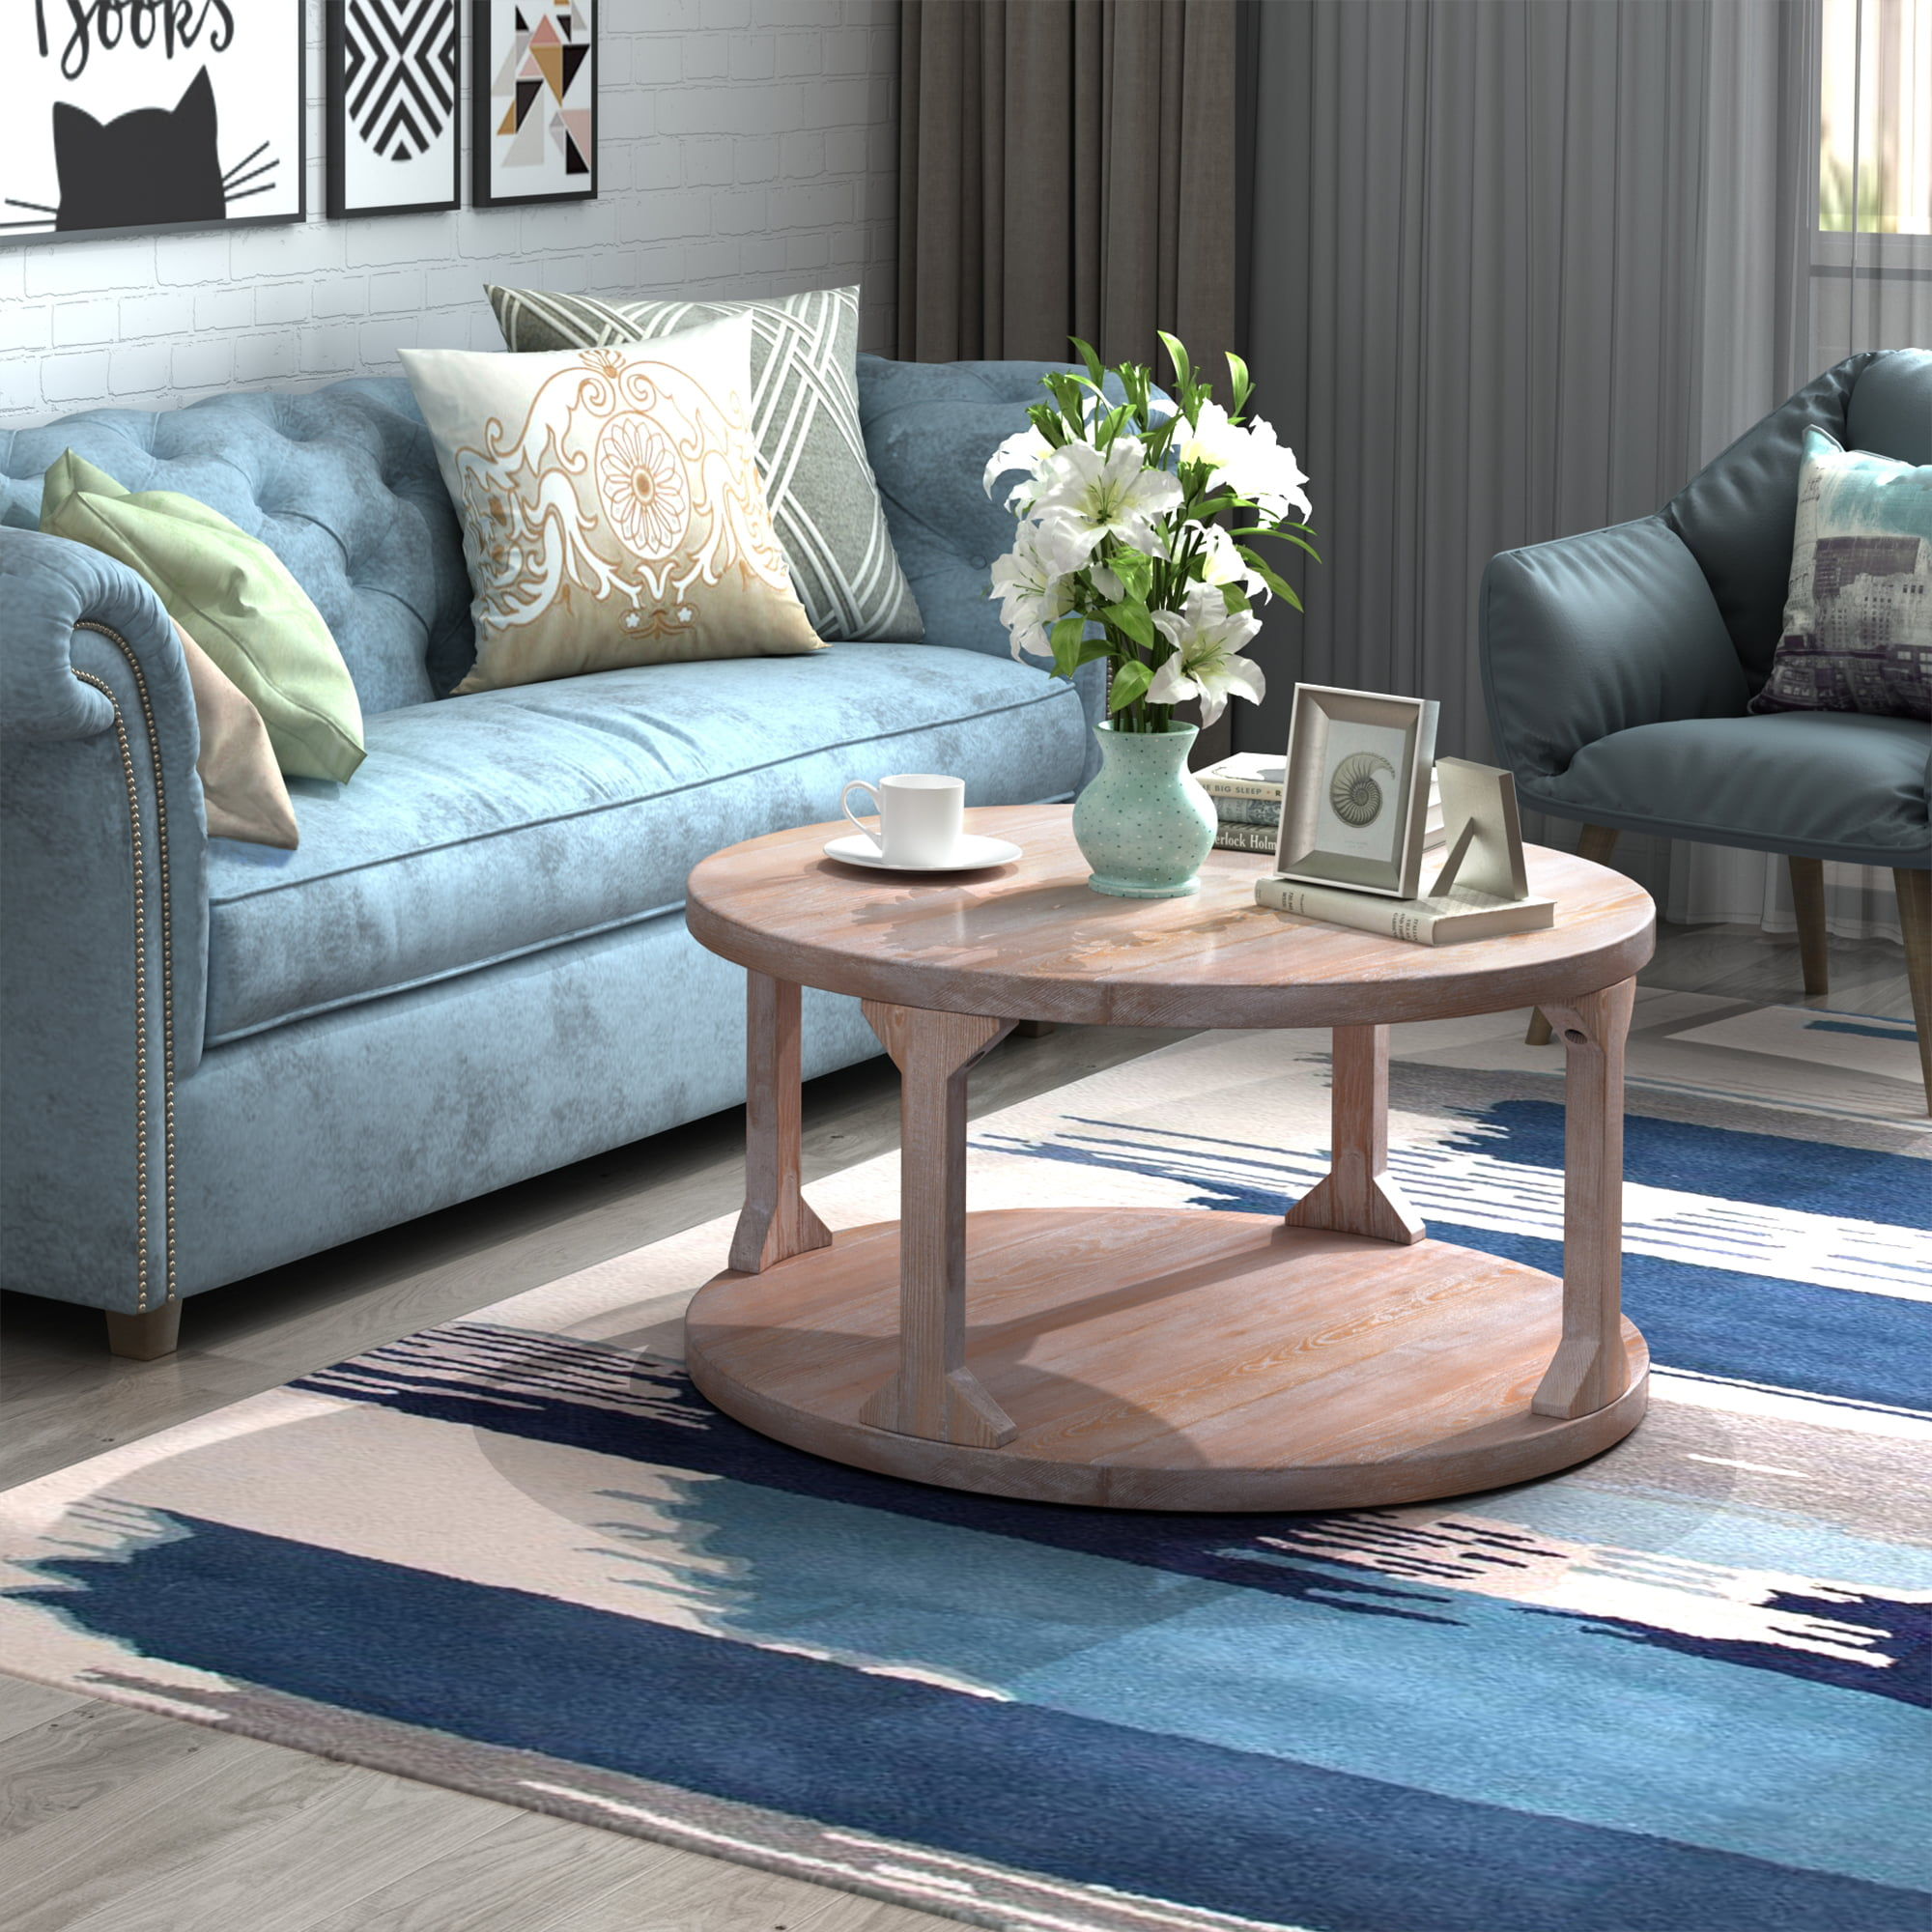 Simple Design Coffee Table, Rustic Wooden Round Coffee ...